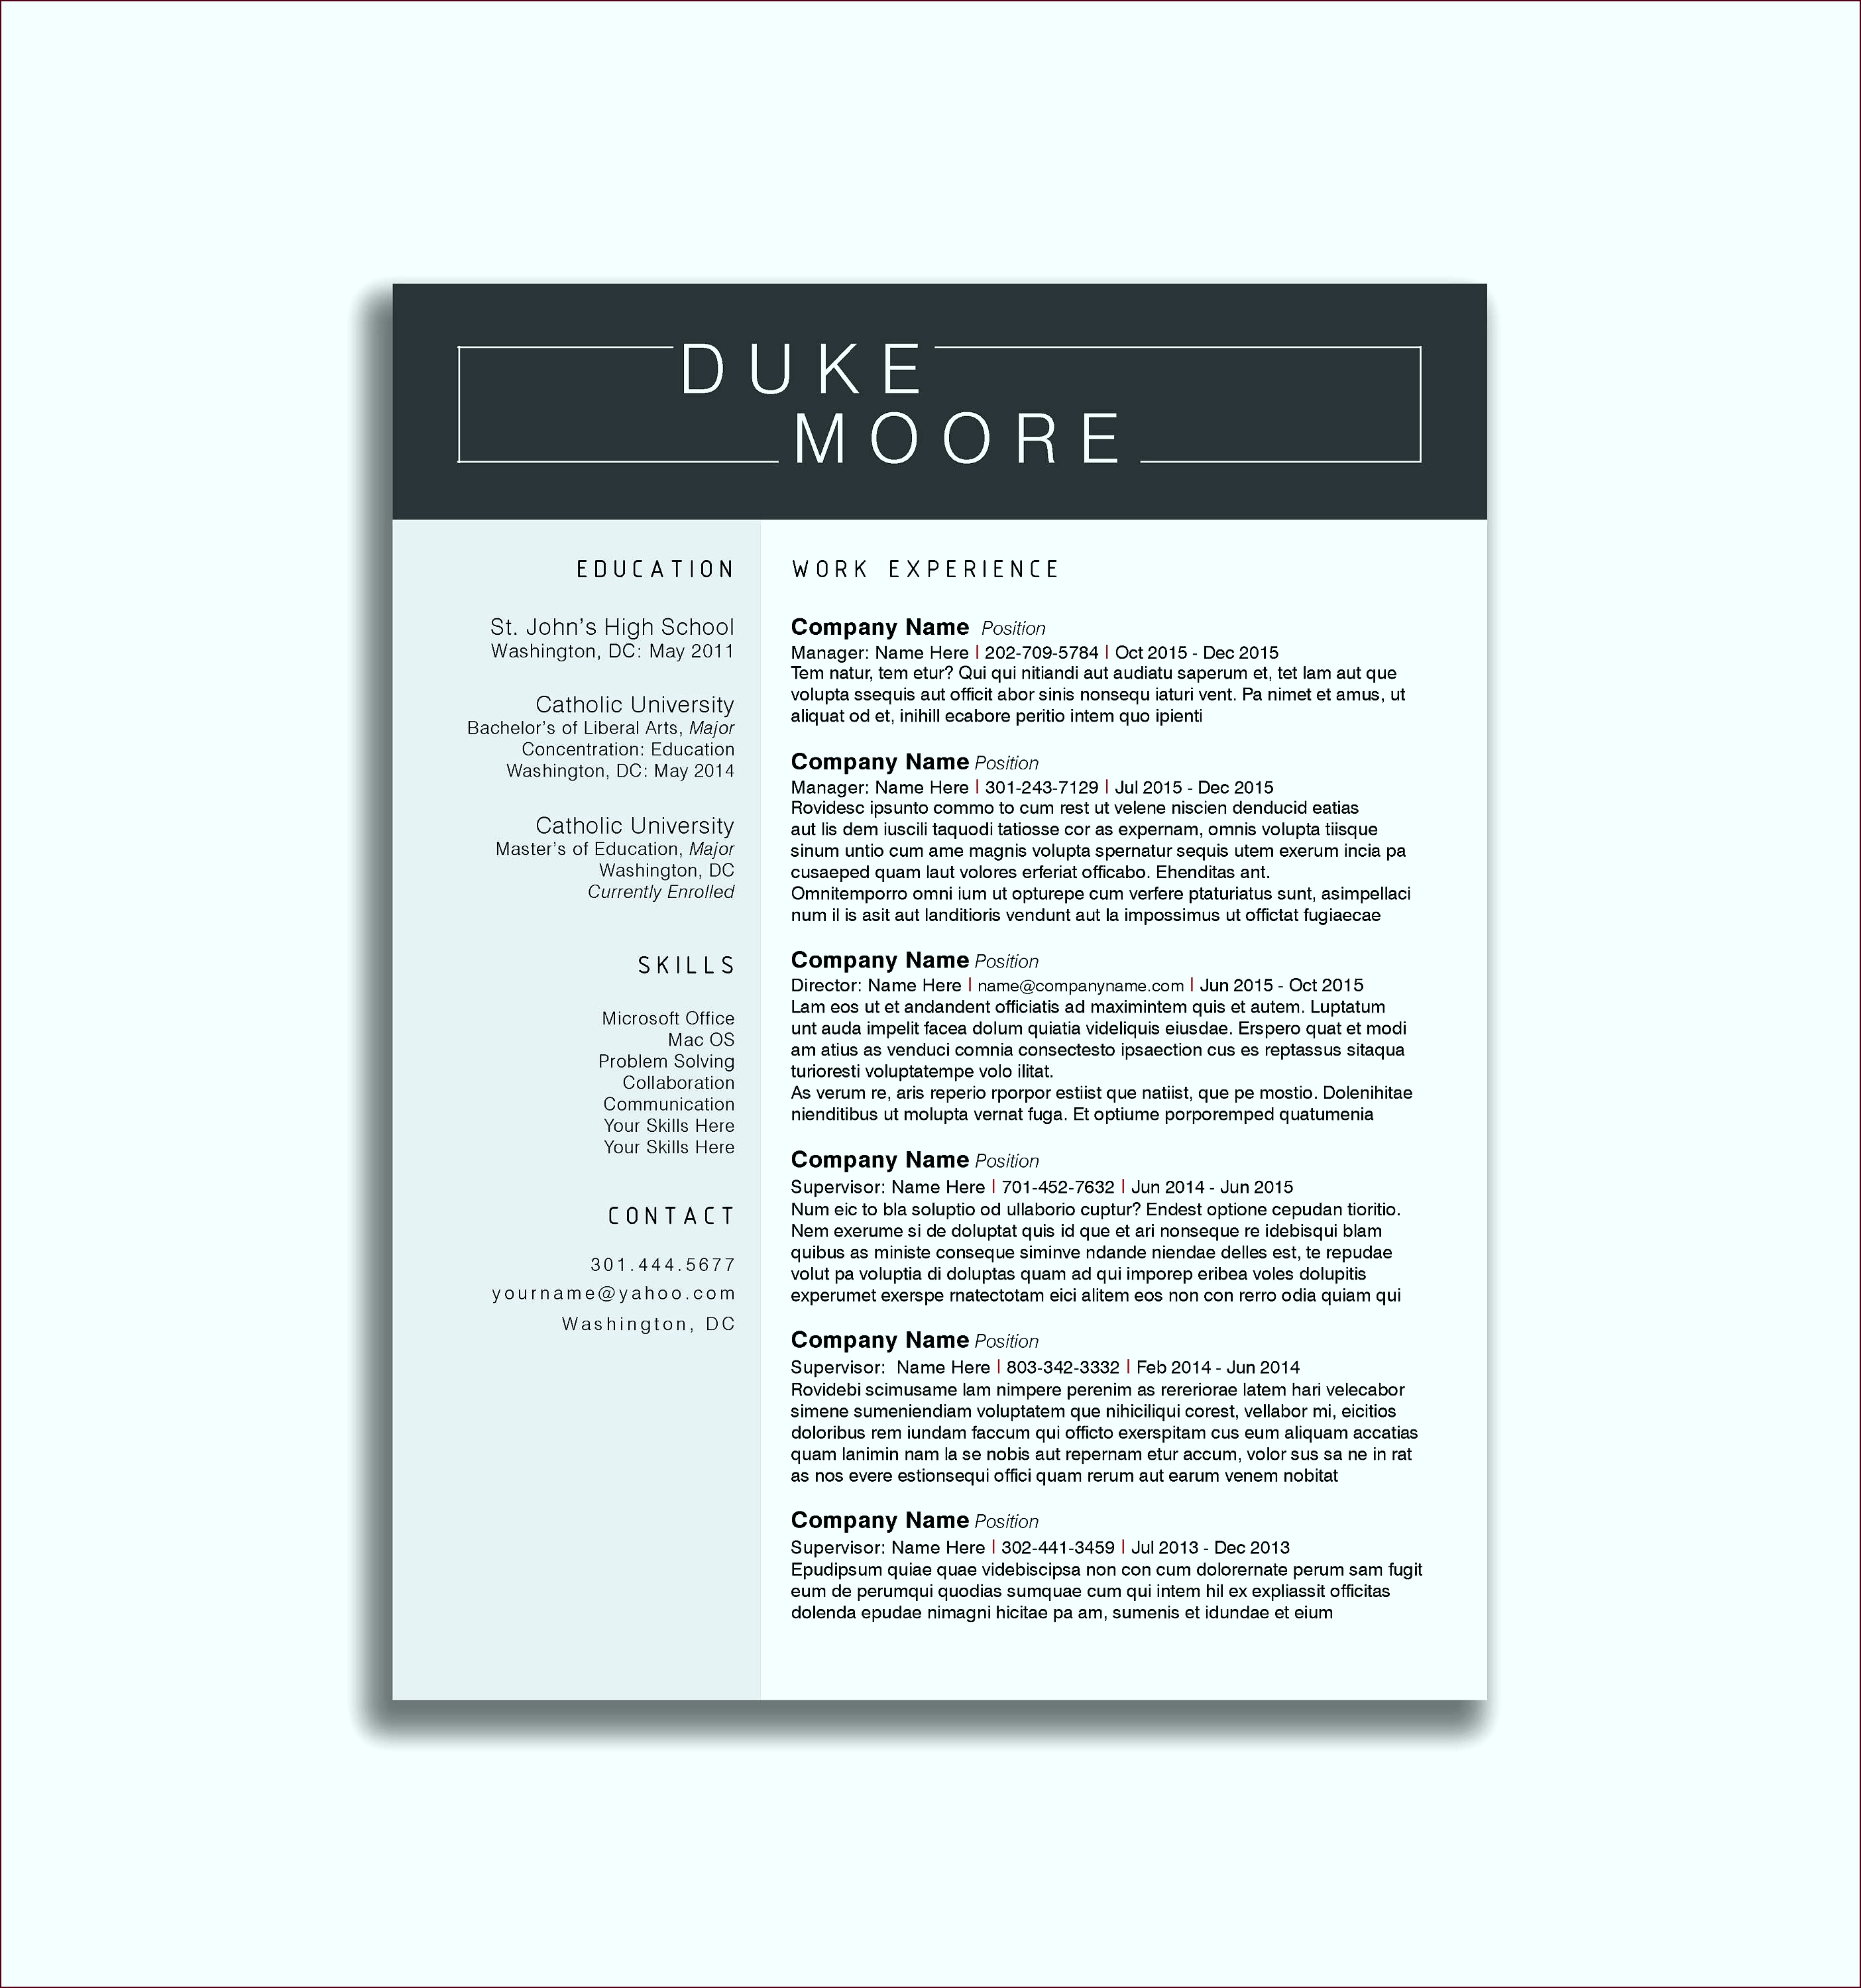 Resume Writing Examples Beautiful Resume Cover Letter Template Docx Best Creative Resume Template rorwe